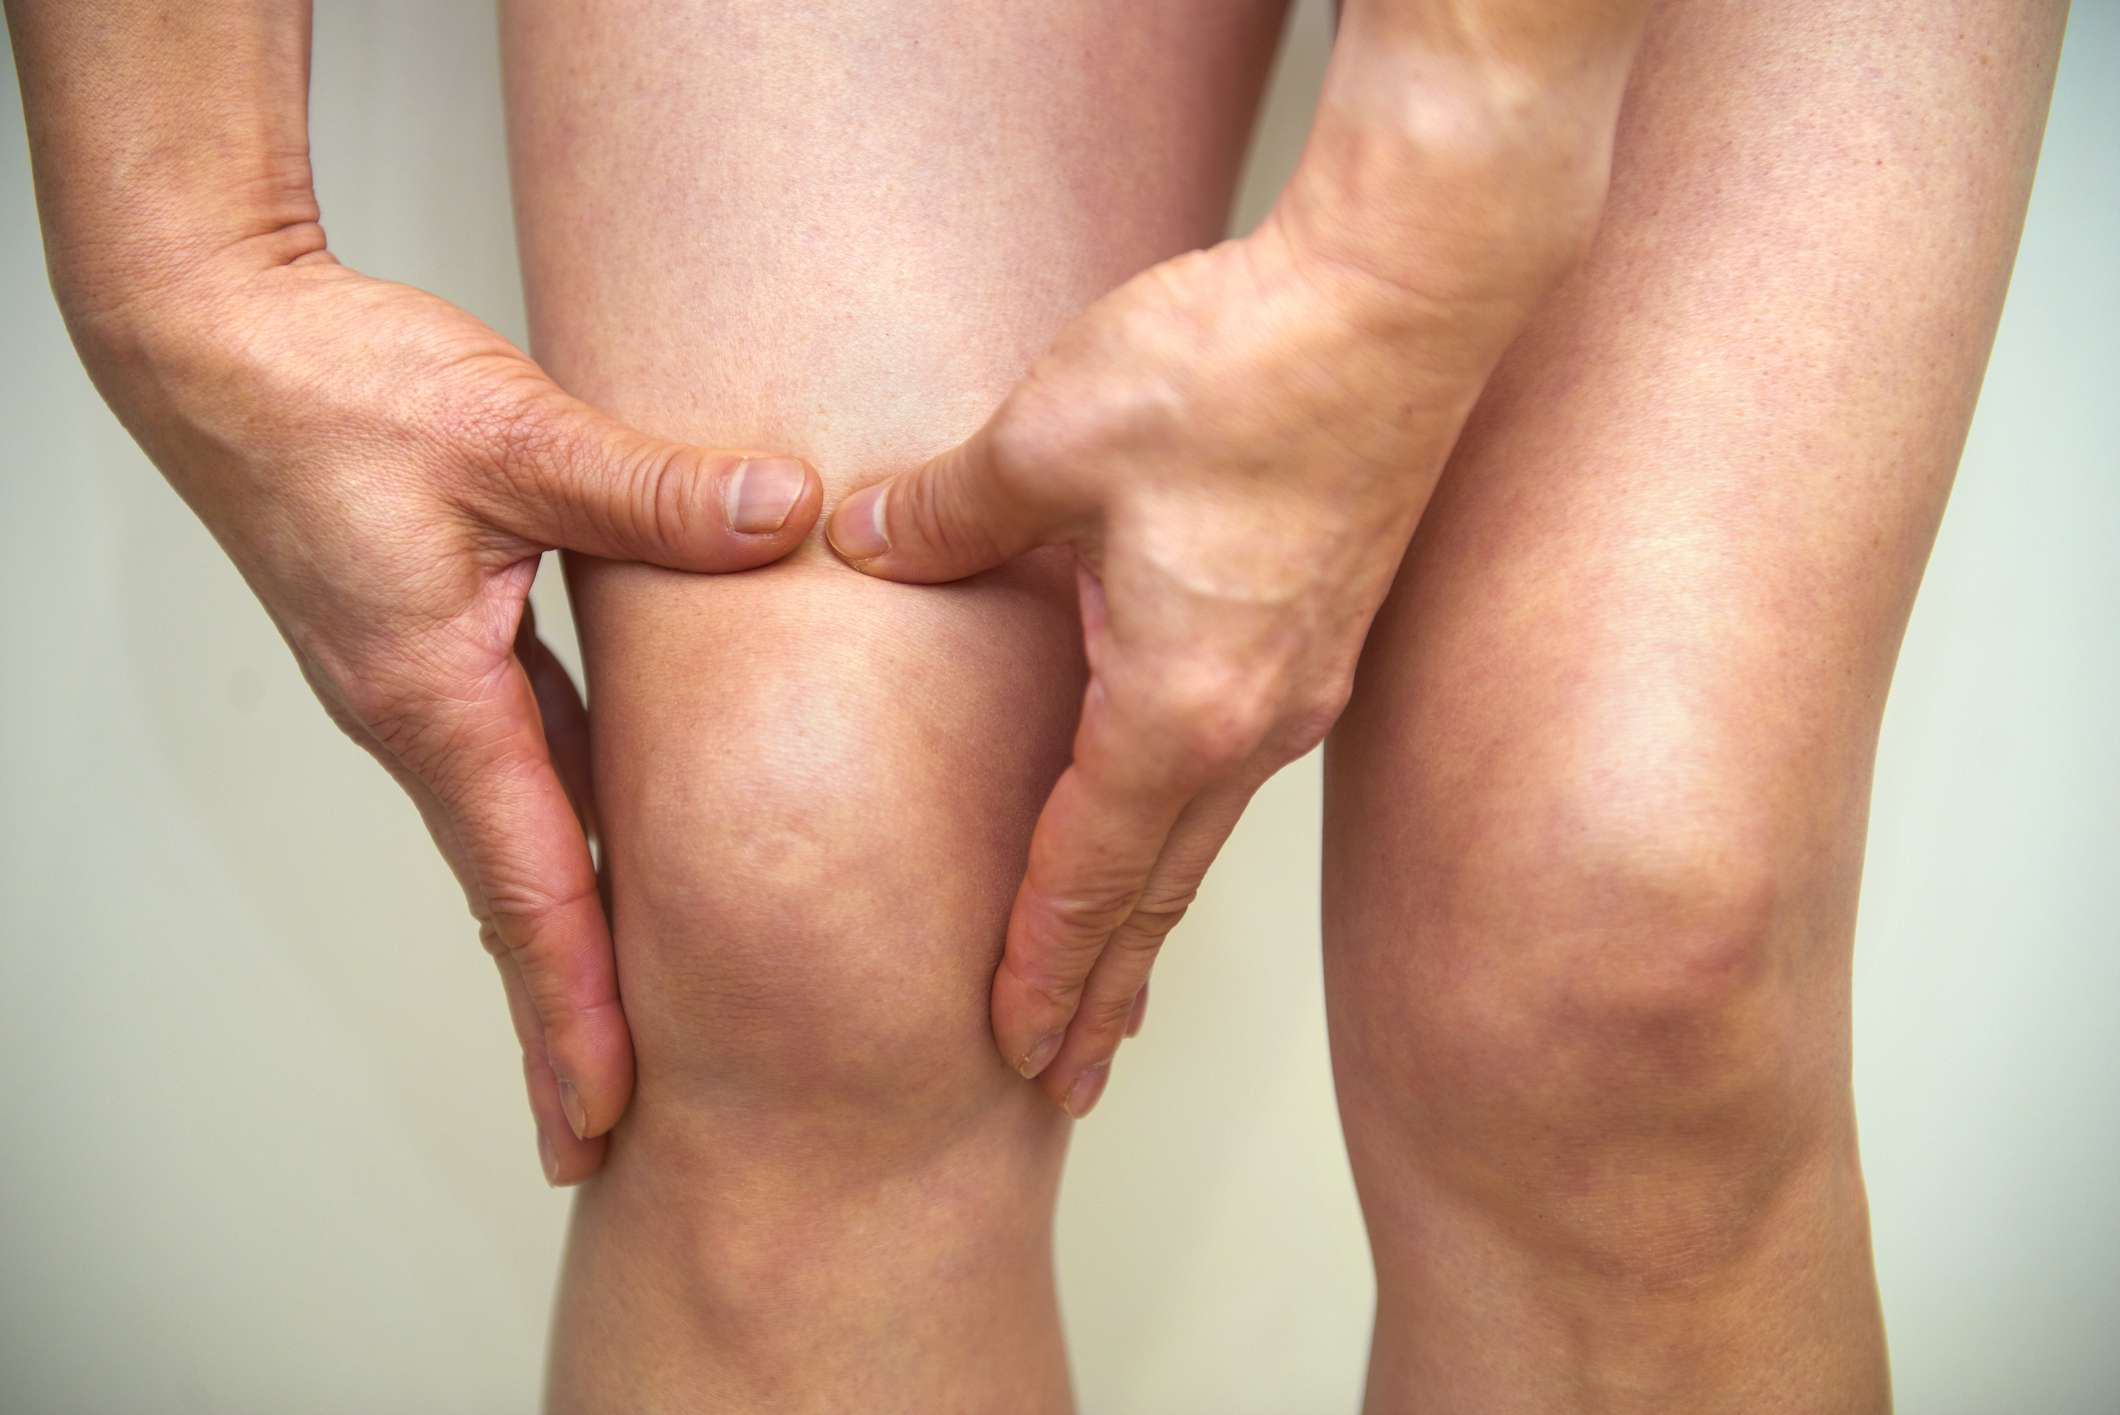 Joint swelling/stiffness